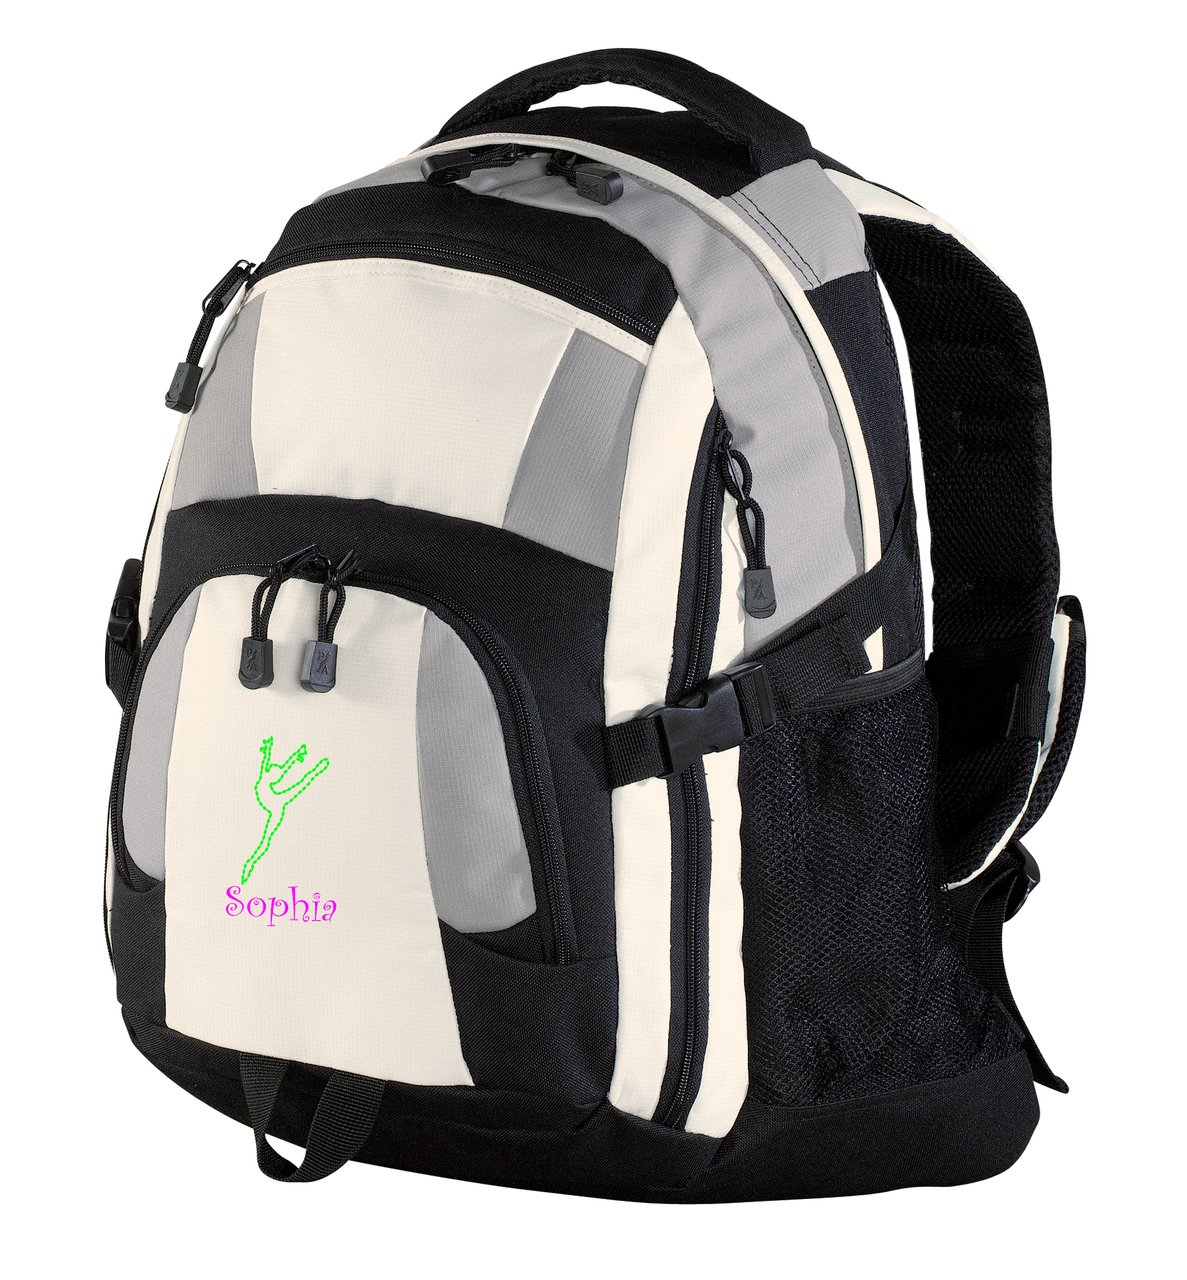 all about me company Personalized Dance 2 Urban Backpack (Grey/Black/Stone)